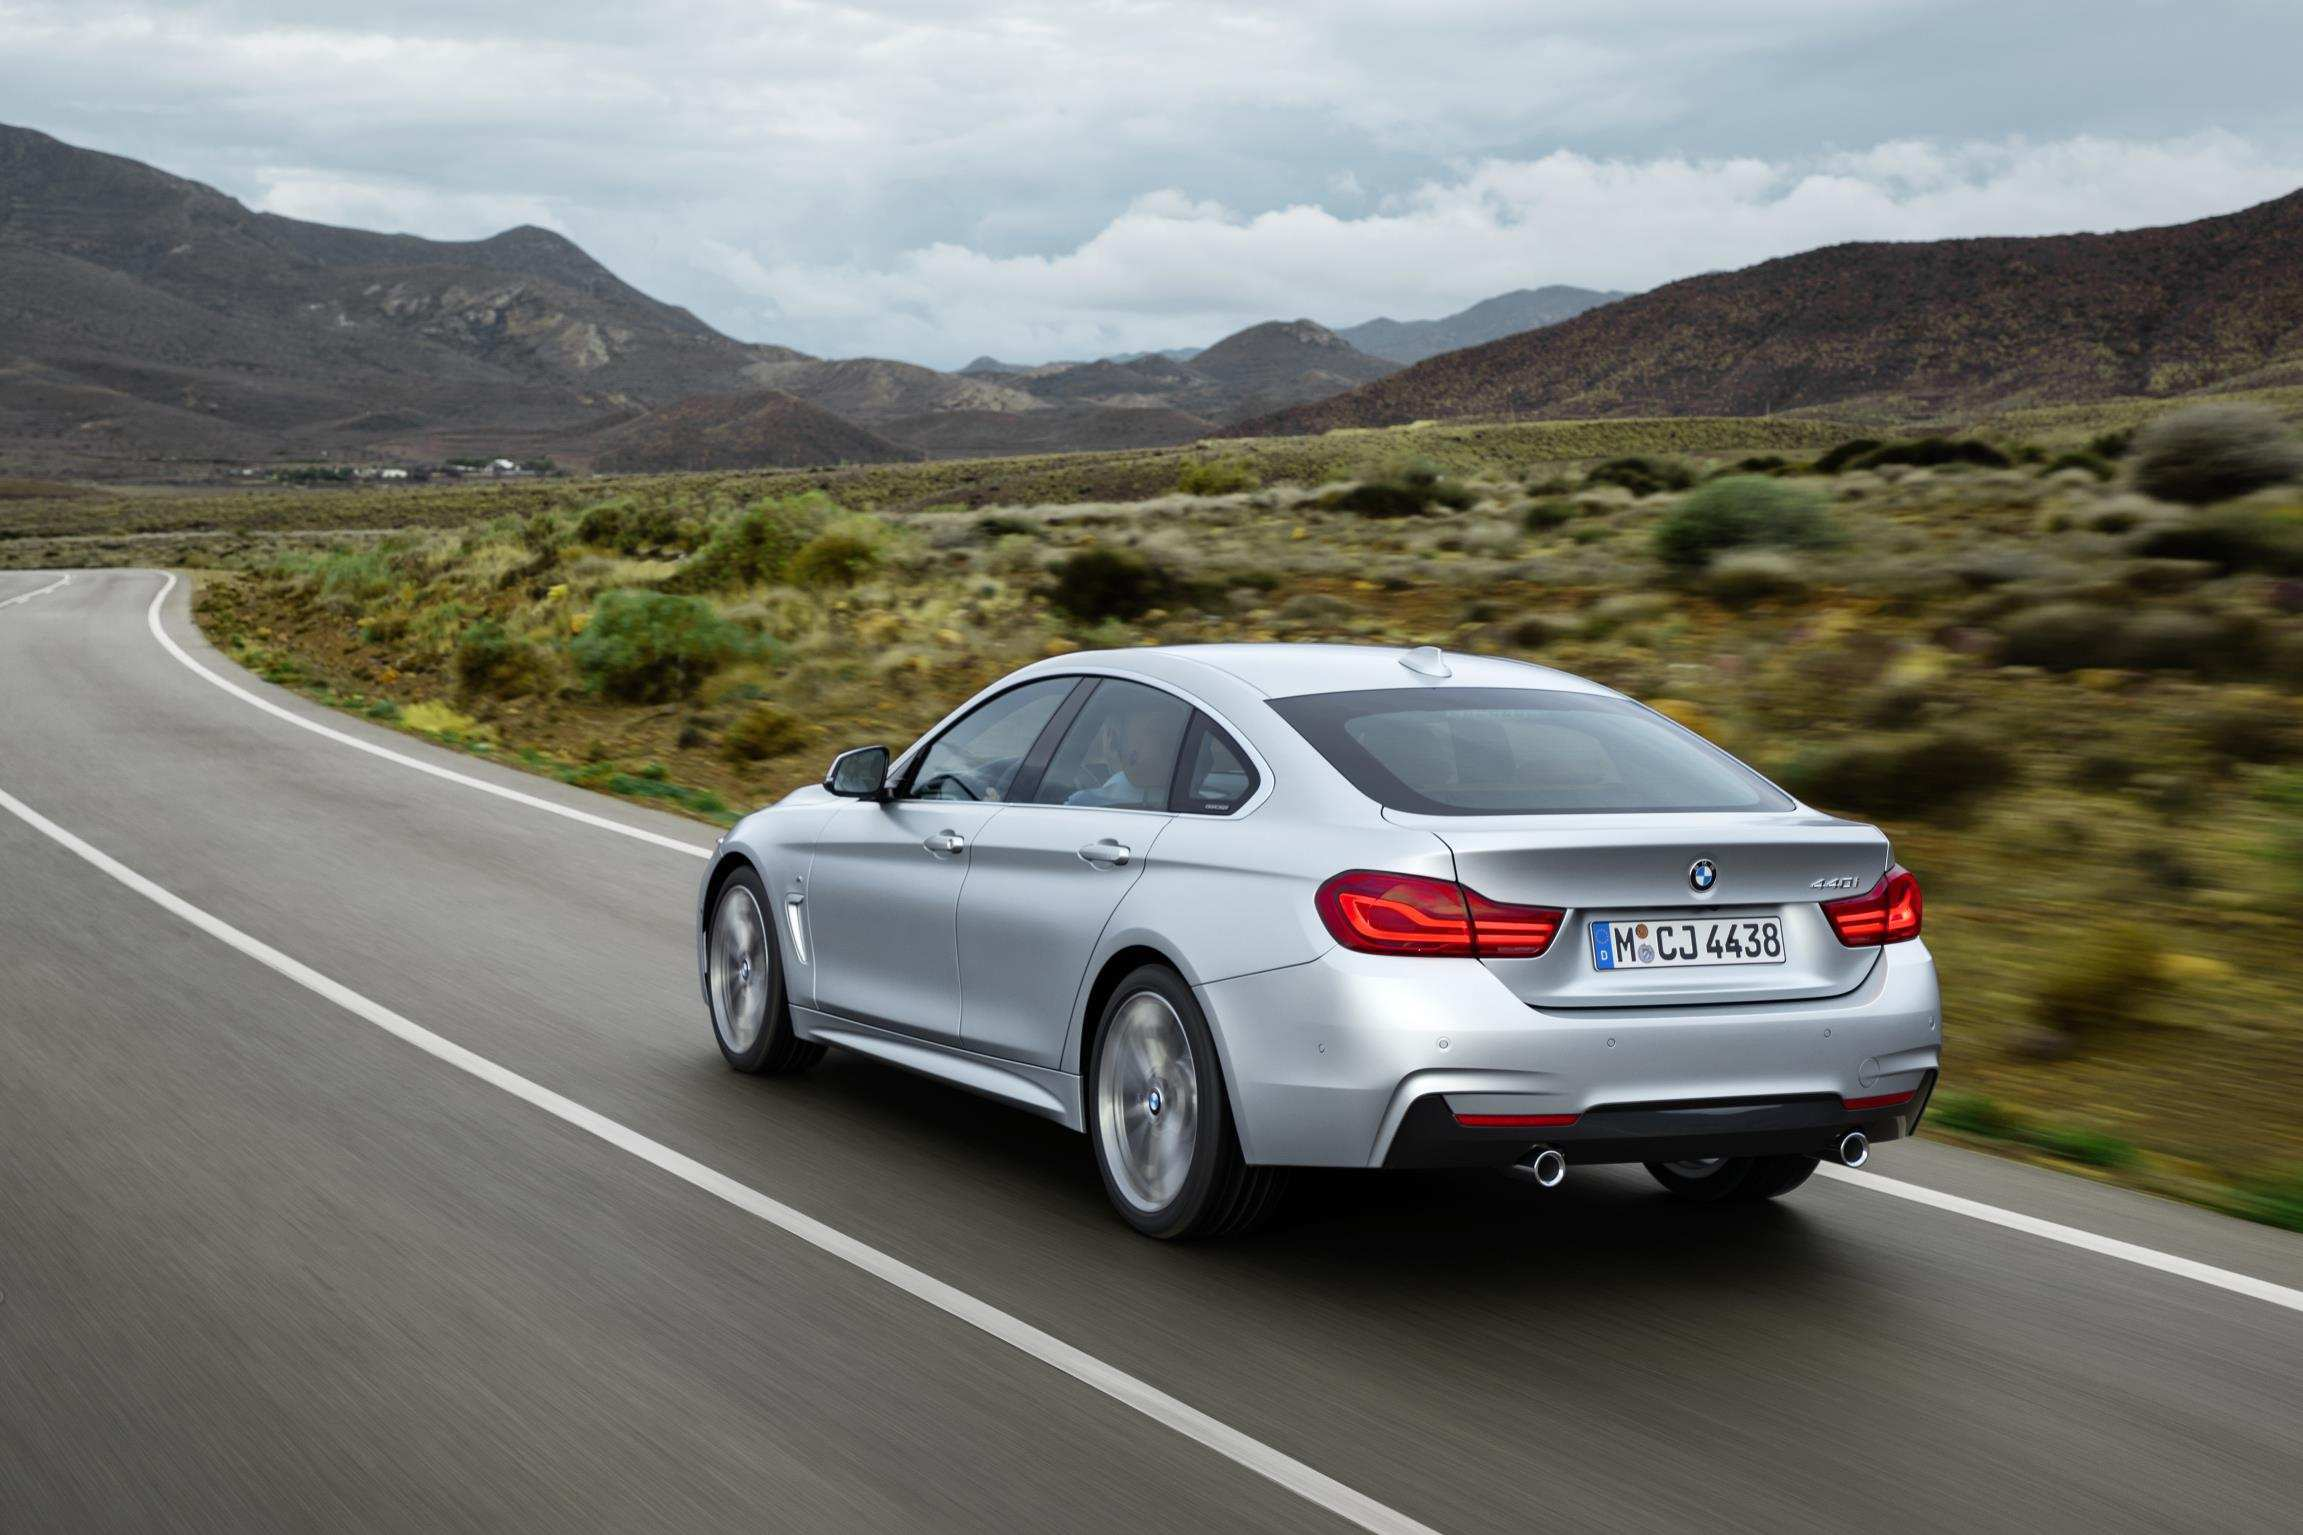 55 Great BMW Gt 2020 Wallpaper for BMW Gt 2020